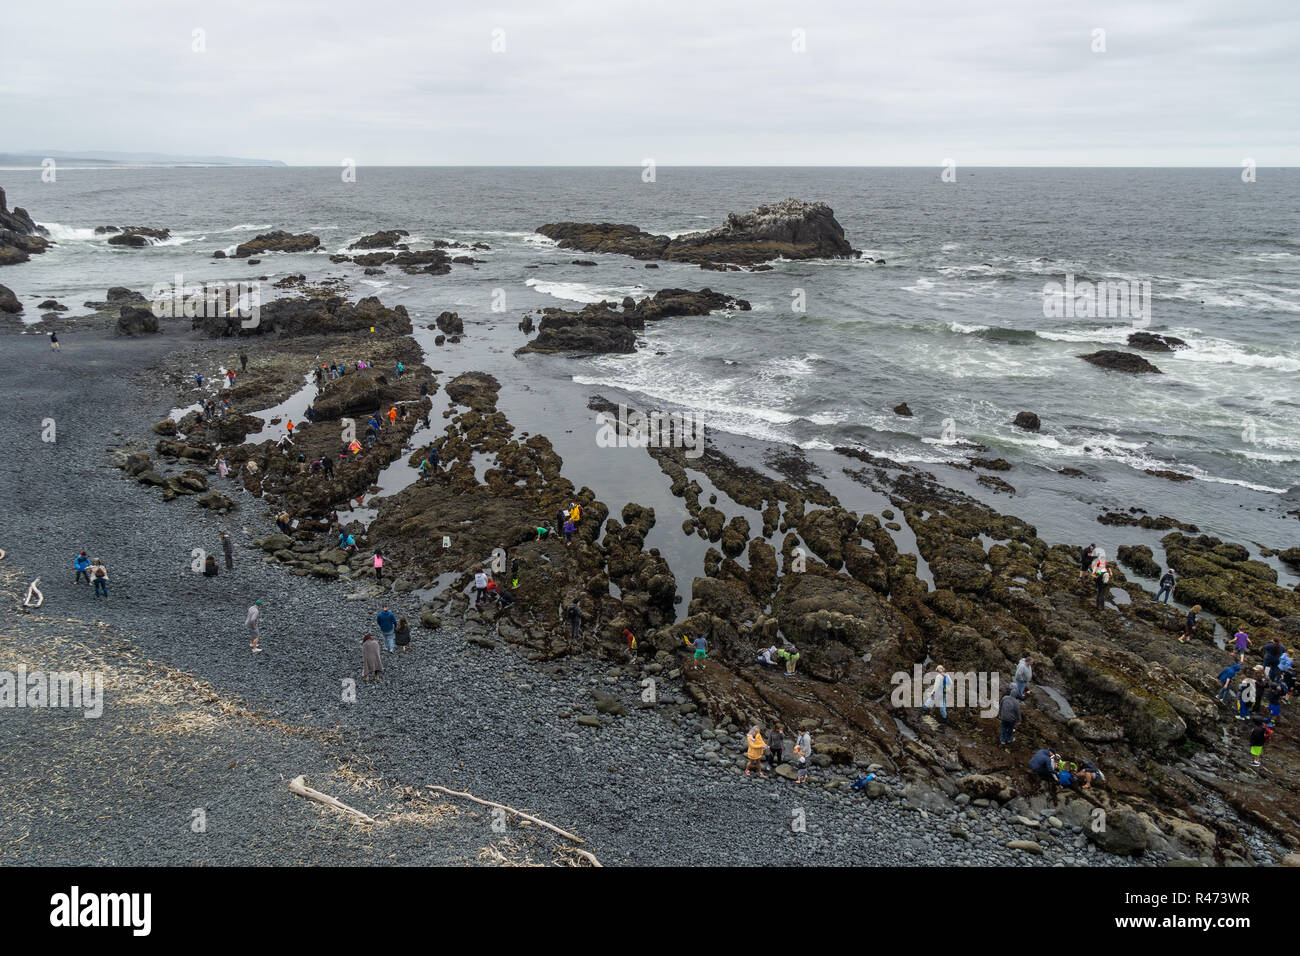 Cobble Beach with people enjoying the tide pools, Yaquina Head Outstanding Natural Area, Newport, Oregon Coast, USA. - Stock Image